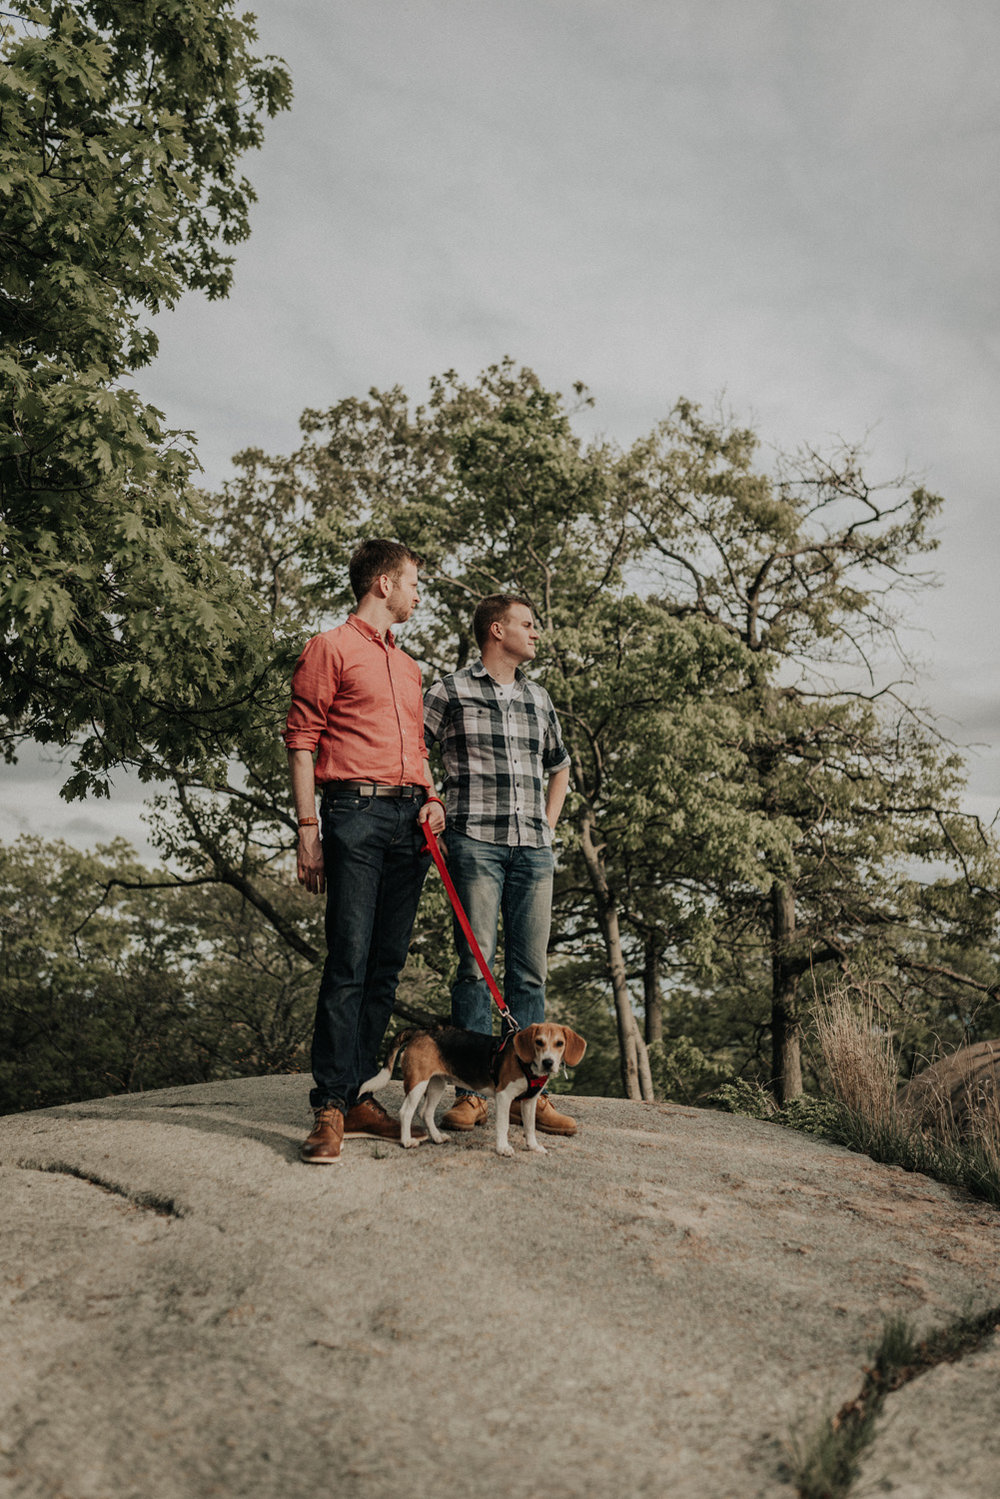 kylewillisphoto_kyle_willis_photography_bear_mountain_engagement_photos_gay_same_sex_sunset_appalacian_philadelphia_new_jersey_york_wedding_photographer_moody_engaged16.jpg